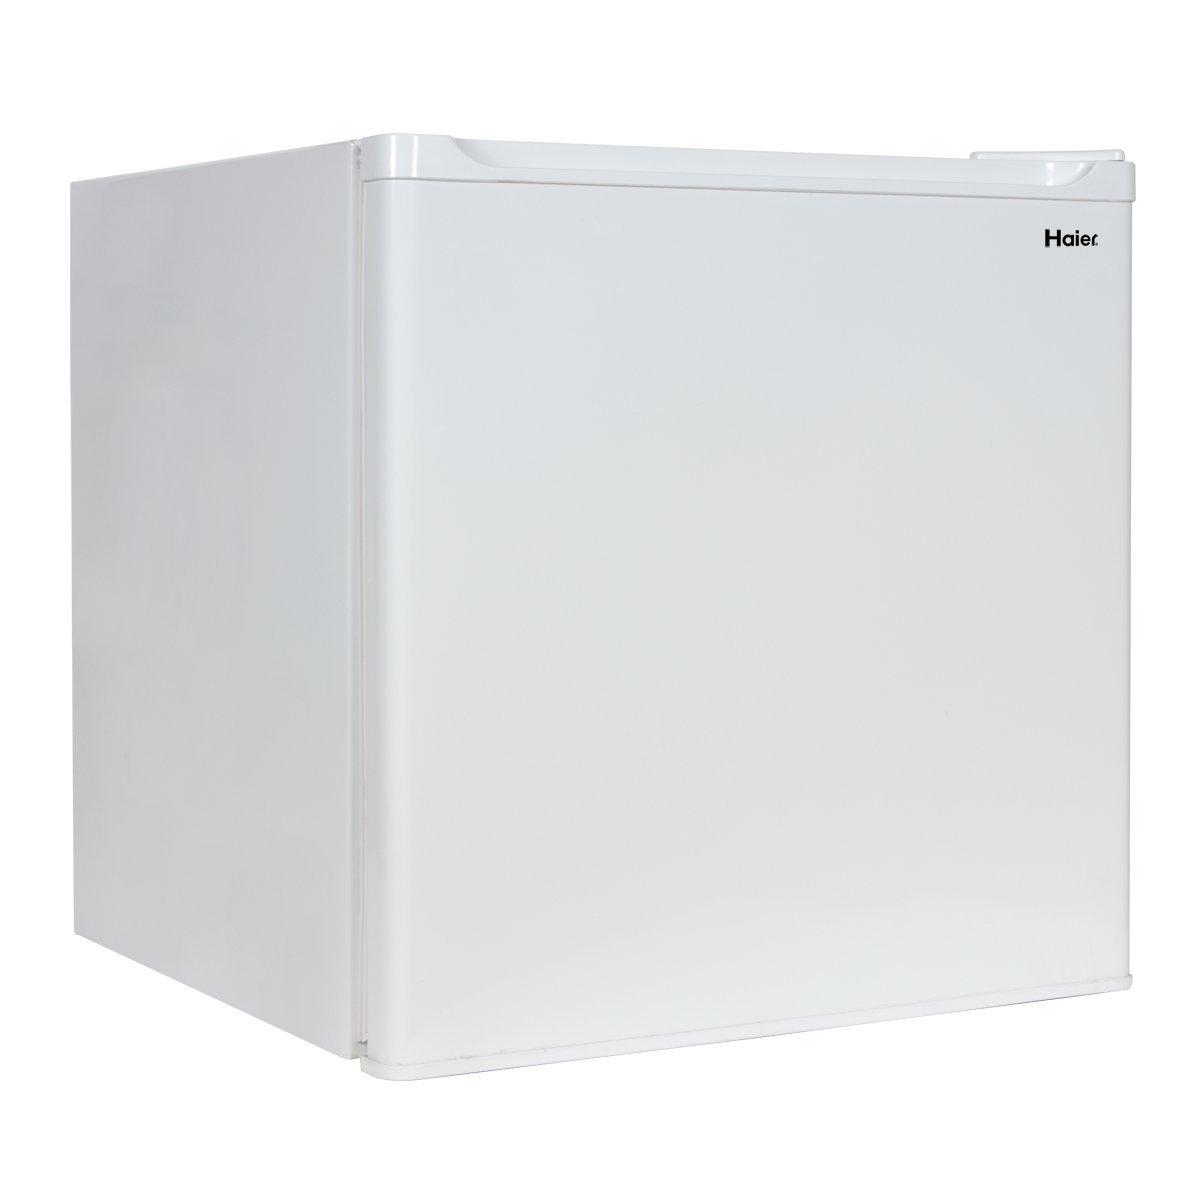 Amazon com  Haier HCR17W 1 7 Cubic Feet Refrigerator Freezer  White   Compact Refrigerators  Kitchen   Dining. Amazon com  Haier HCR17W 1 7 Cubic Feet Refrigerator Freezer